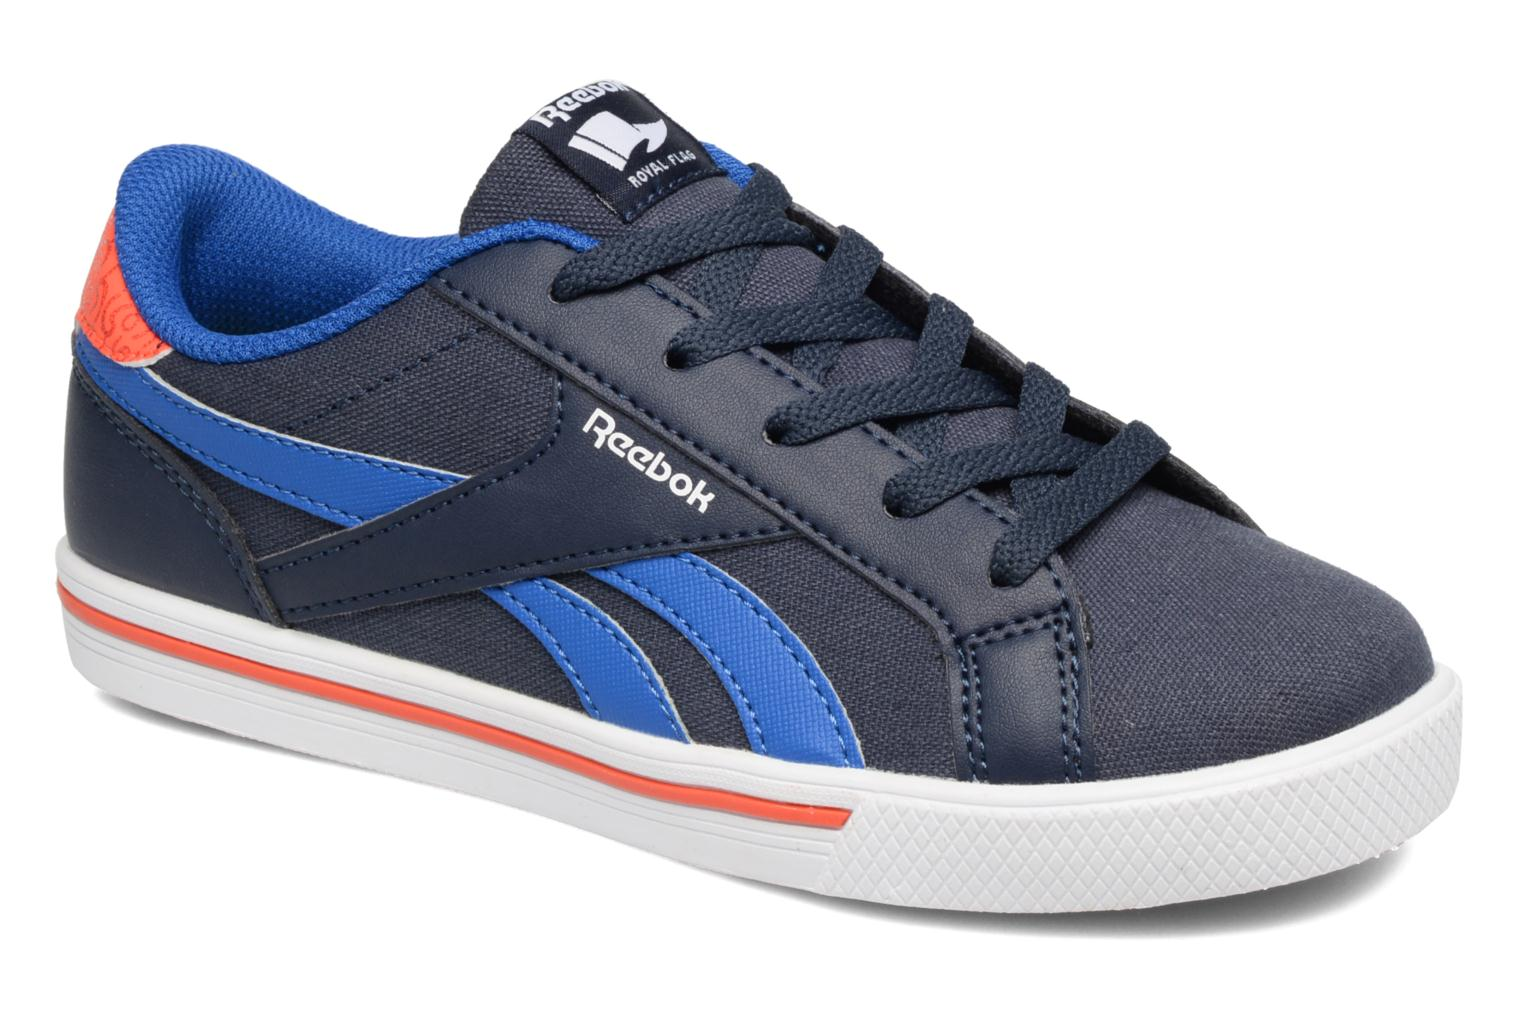 sneakers-reebok-royal-comp-low-cvs-by-reebok